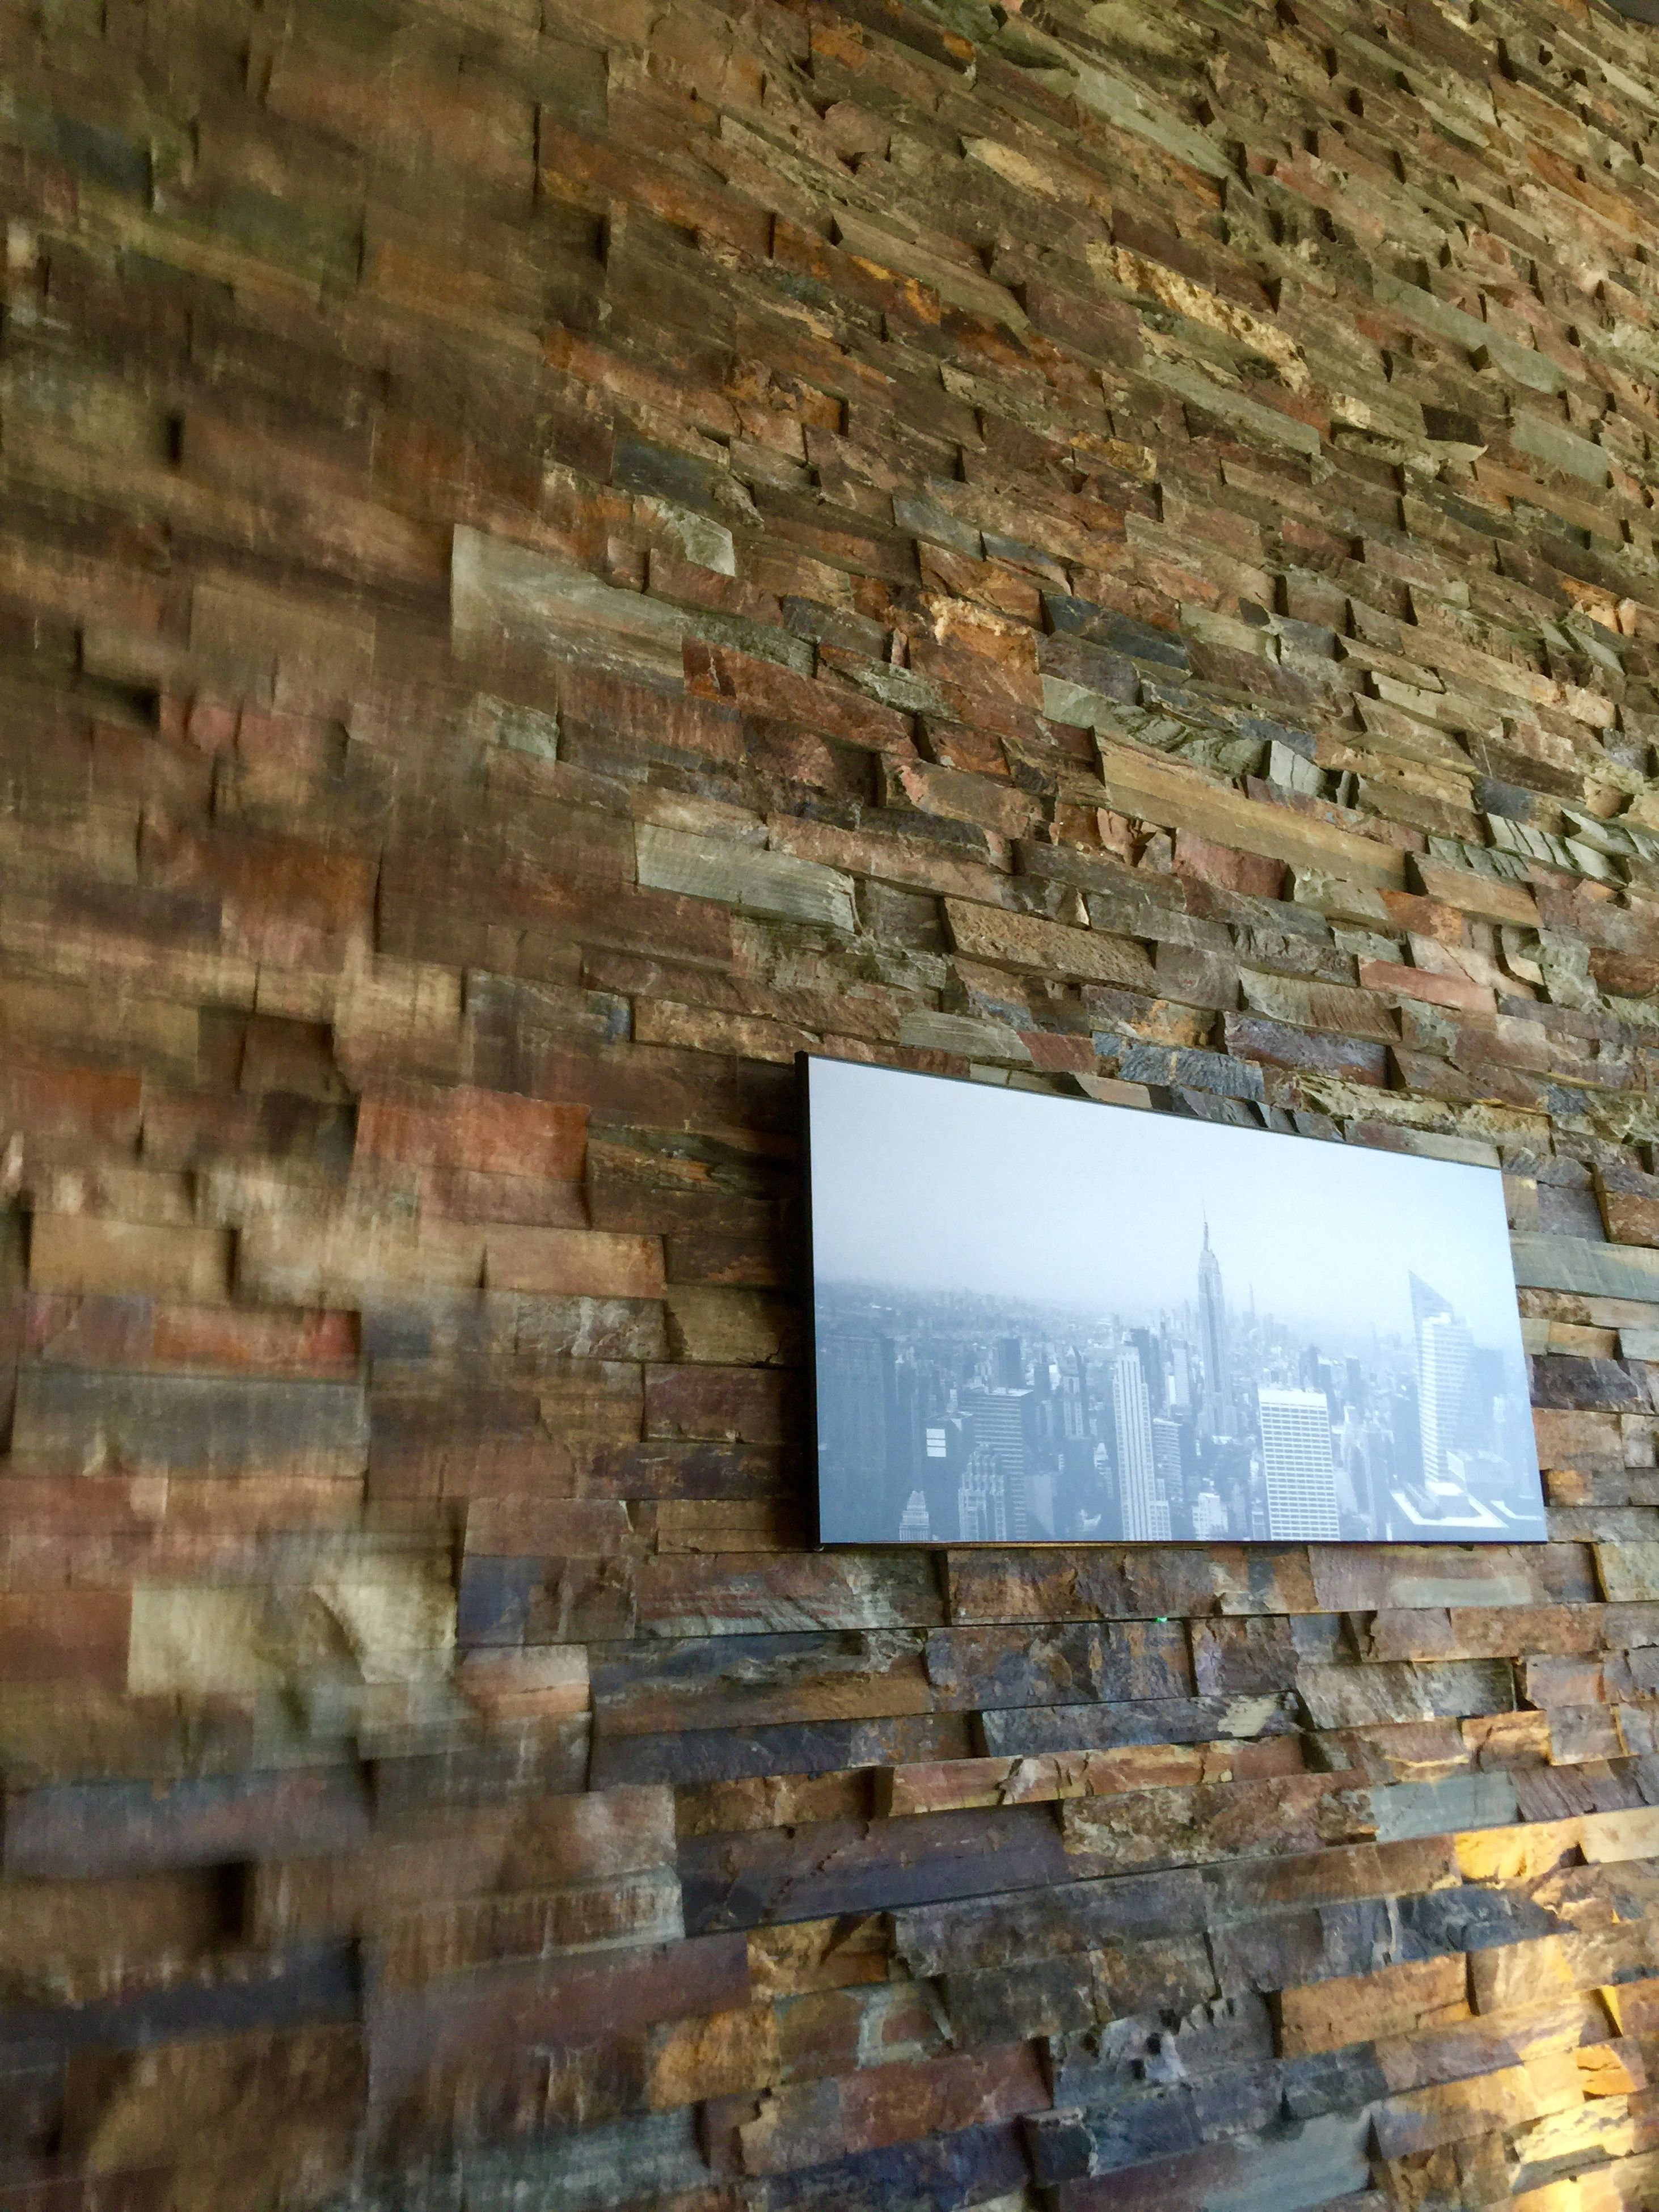 architecture, built structure, abandoned, wall - building feature, damaged, brick wall, old, deterioration, obsolete, indoors, run-down, window, wall, weathered, building exterior, stone wall, no people, day, textured, house